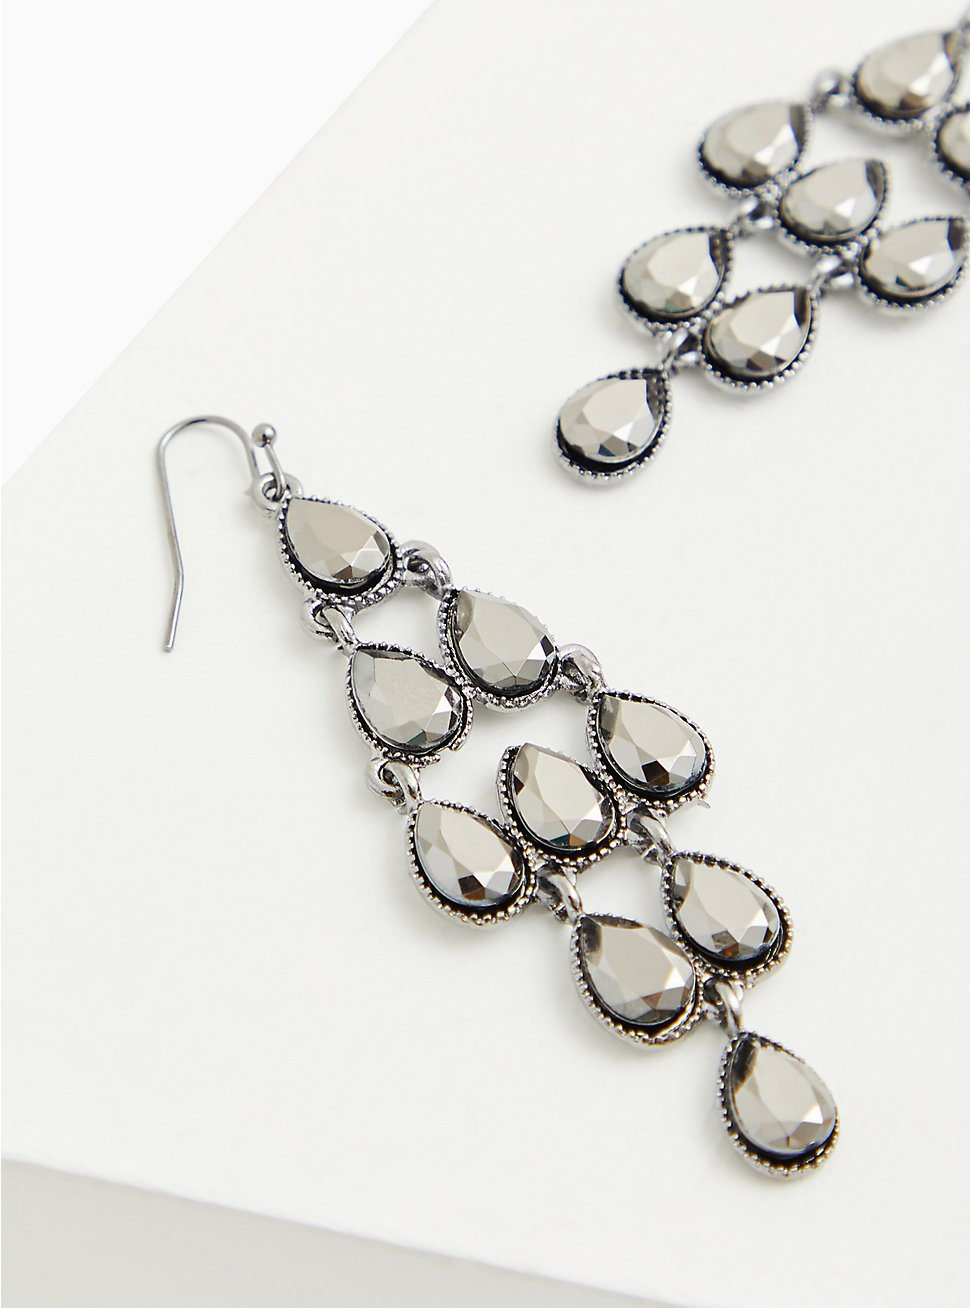 Plus Size Silver Tone Waterfall Statement Earrings, , hi-res